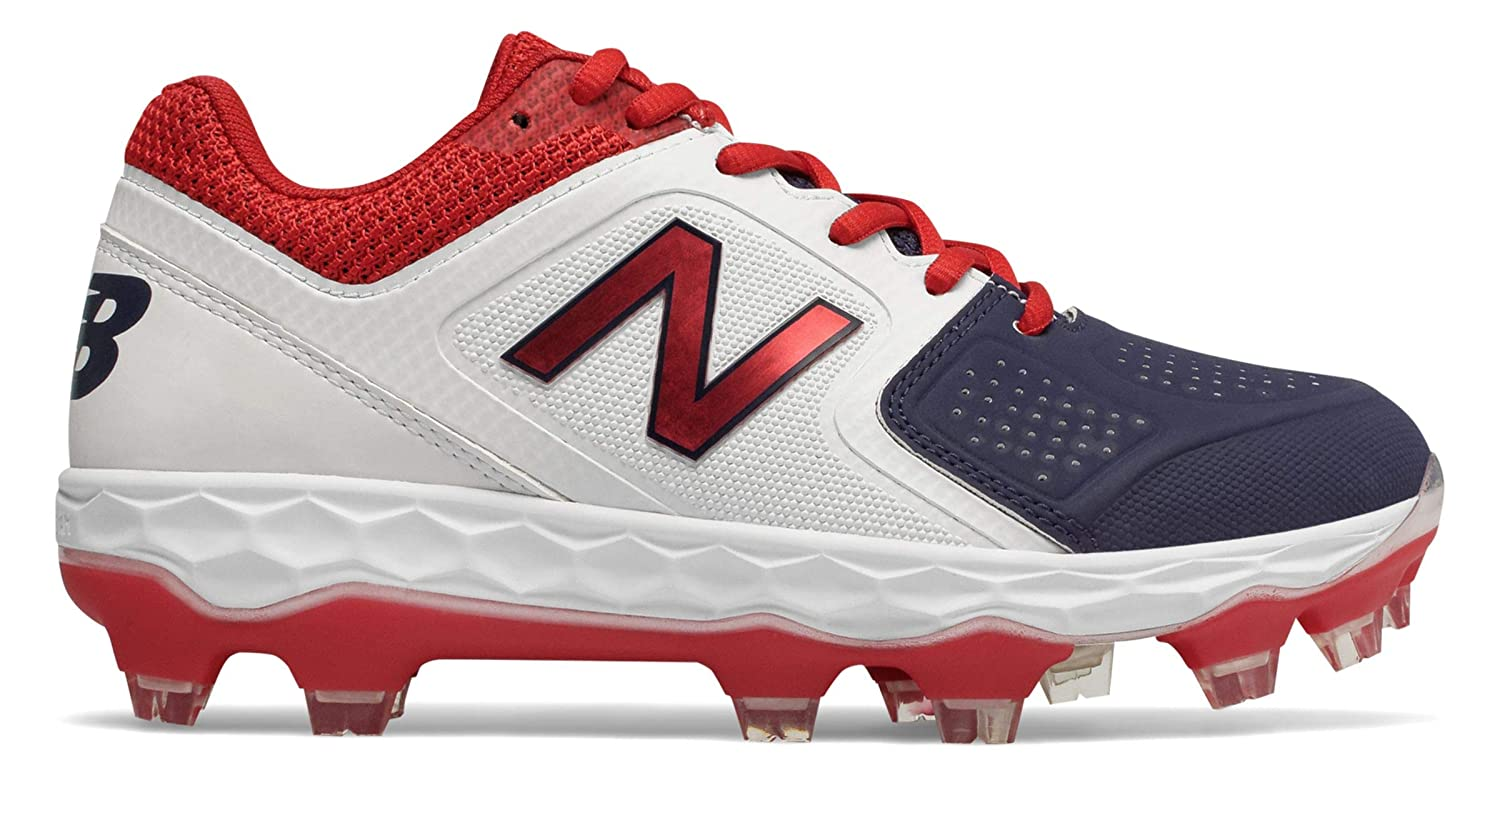 [New Balance(ニューバランス)] 靴シューズ レディース野球ソフト Fresh Foam SPVELOv1 B07JBB4CQJ 28.0 cm|Red with White and Blue Red with White and Blue 28.0 cm